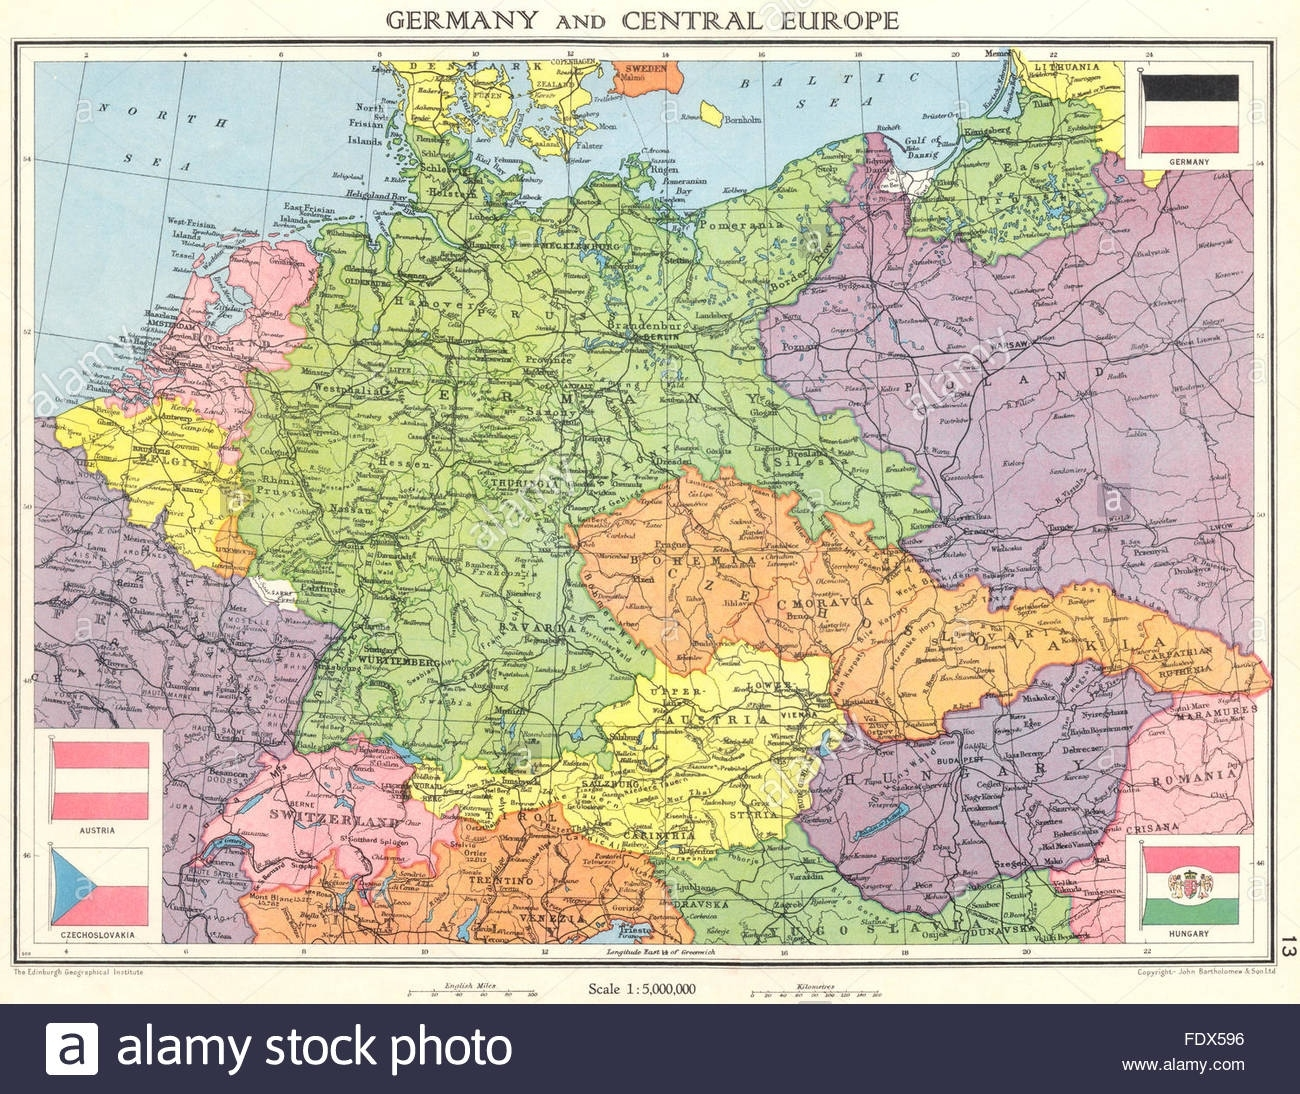 Germany & Central Europe: Shortly Before World War 2. Saarland, 1938 intended for Old World Map Of Germany